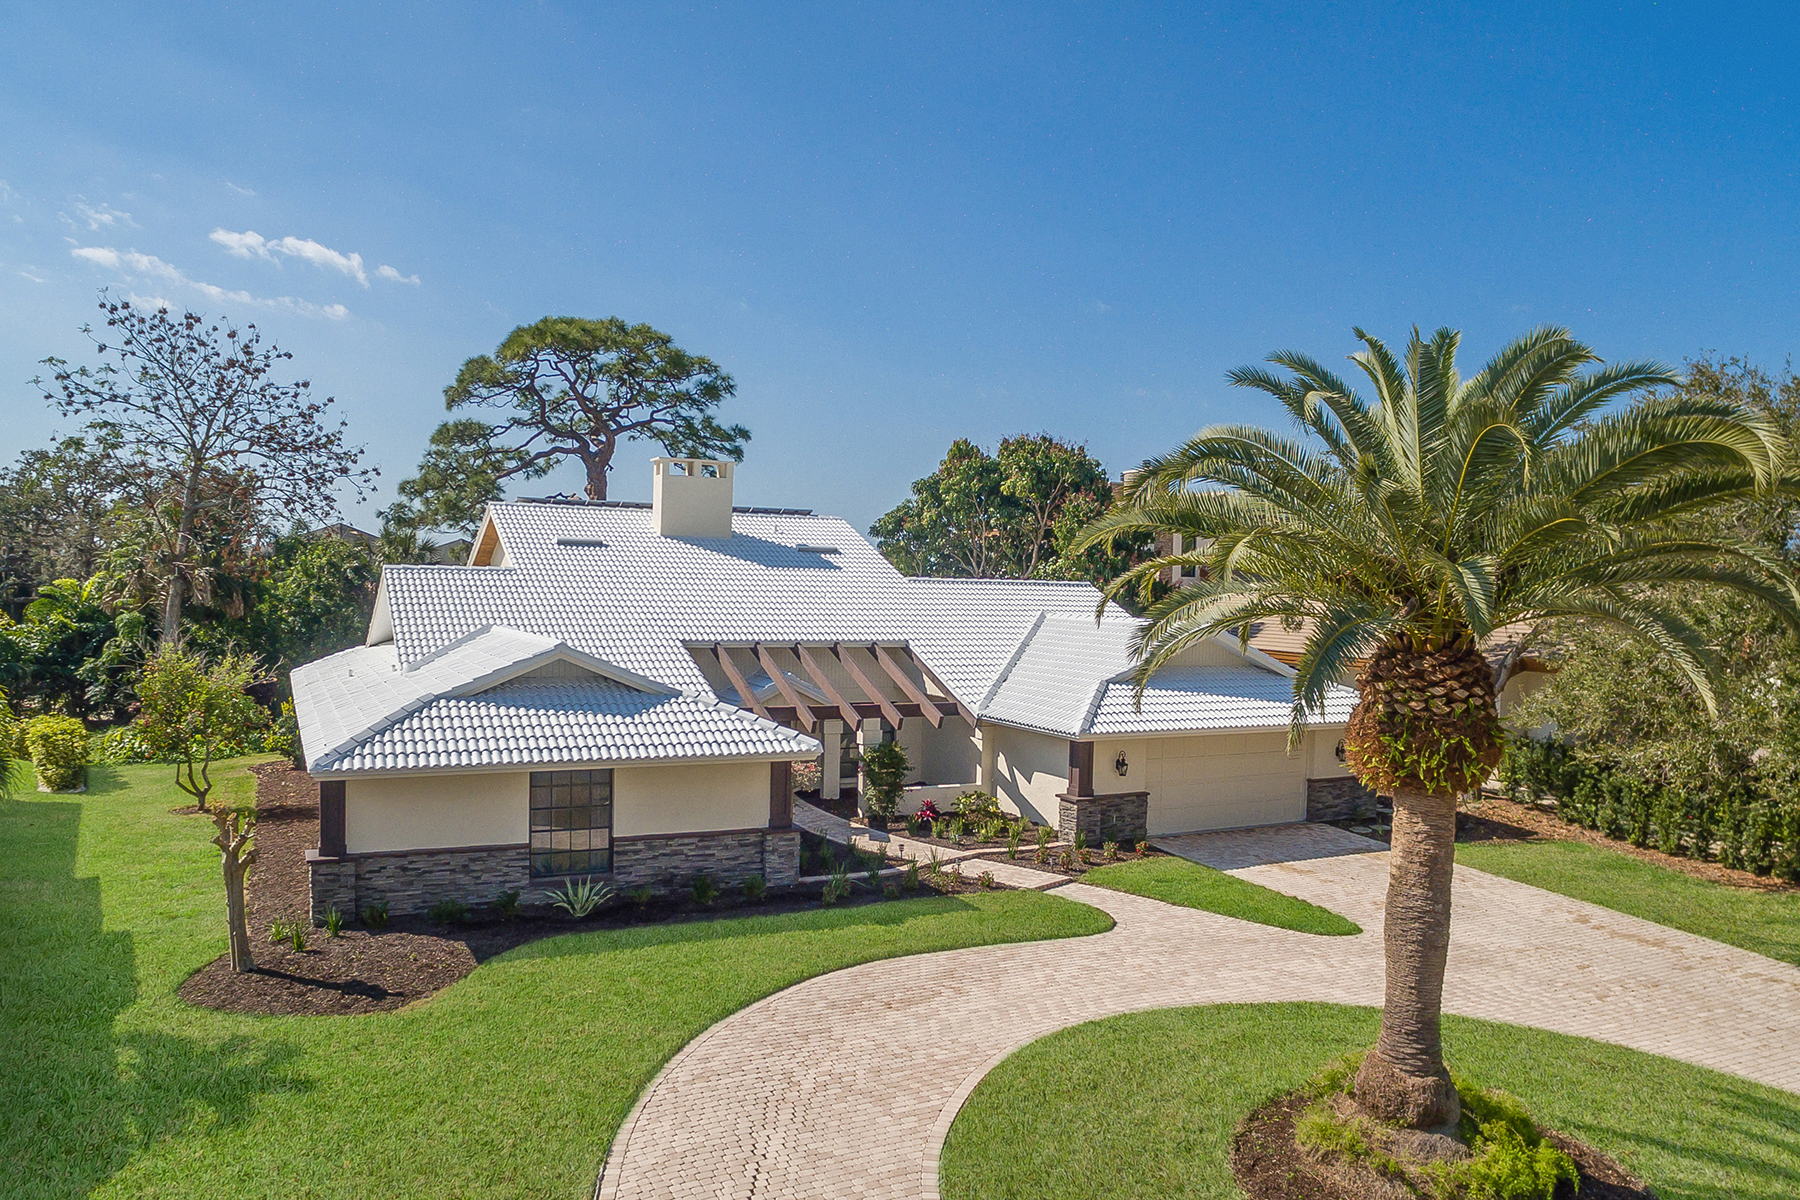 Single Family Home for Sale at SOUTHBAY YACHT & RACQUET CLUB 267 Lookout Point Dr Osprey, Florida, 34229 United States